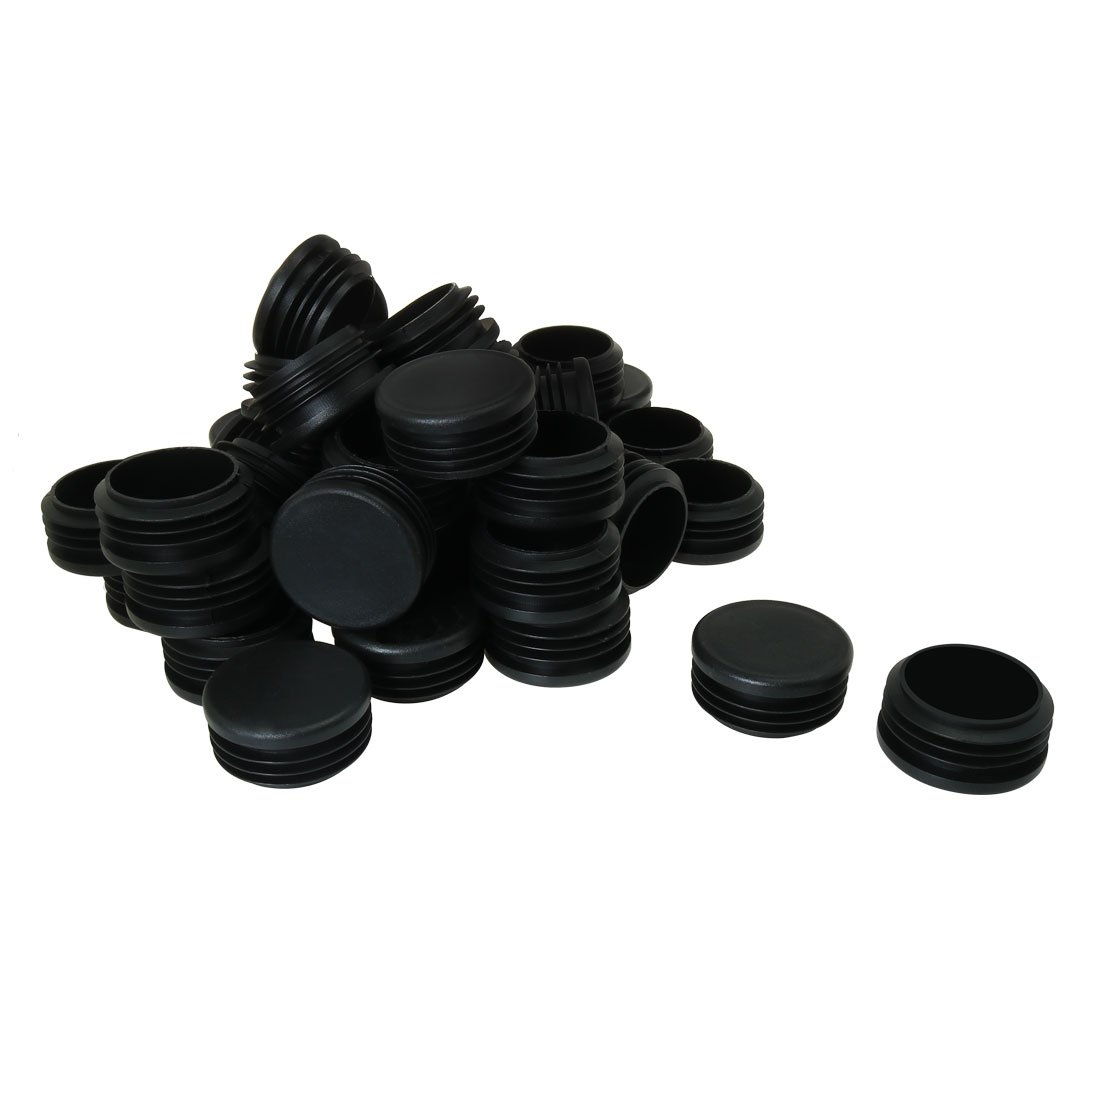 uxcell 1 3/4'' 1.77'' OD Plastic Round Tube Insert Glide End Cap Pad 45pcs 1.61''-1.69'' Inner Dia for Furniture Floor Deck Non-scratch